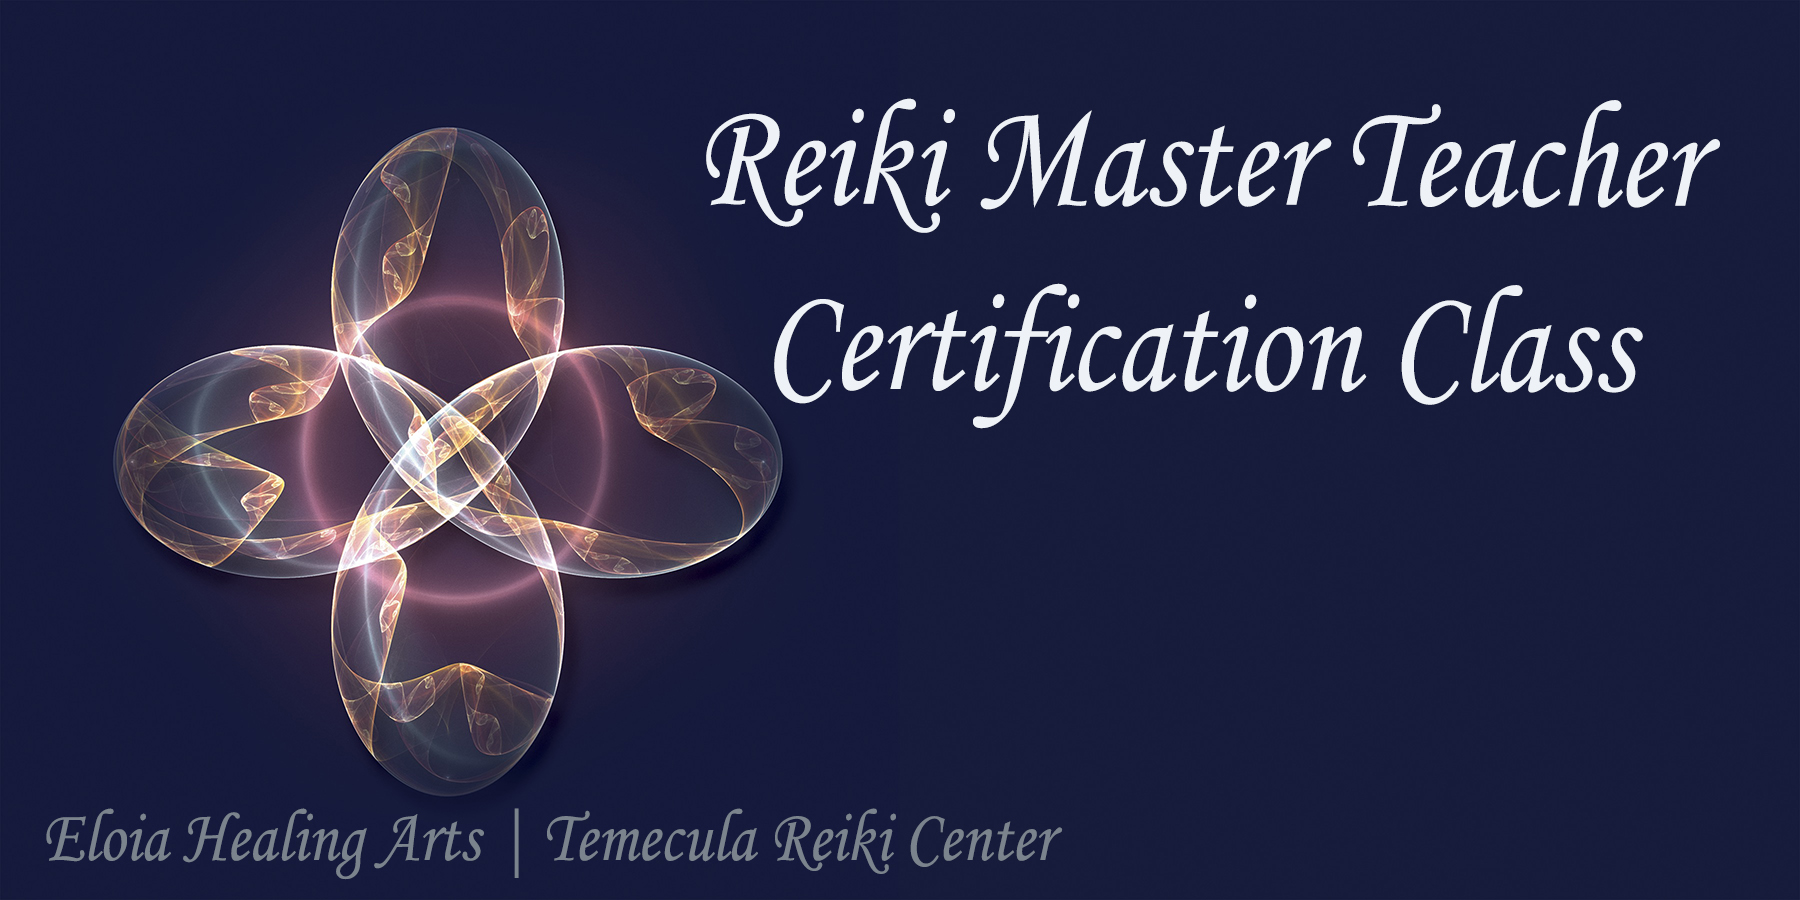 Usui Reiki Master Teacher Certification Class (Aug 18/19) @ Temecula Reiki Center